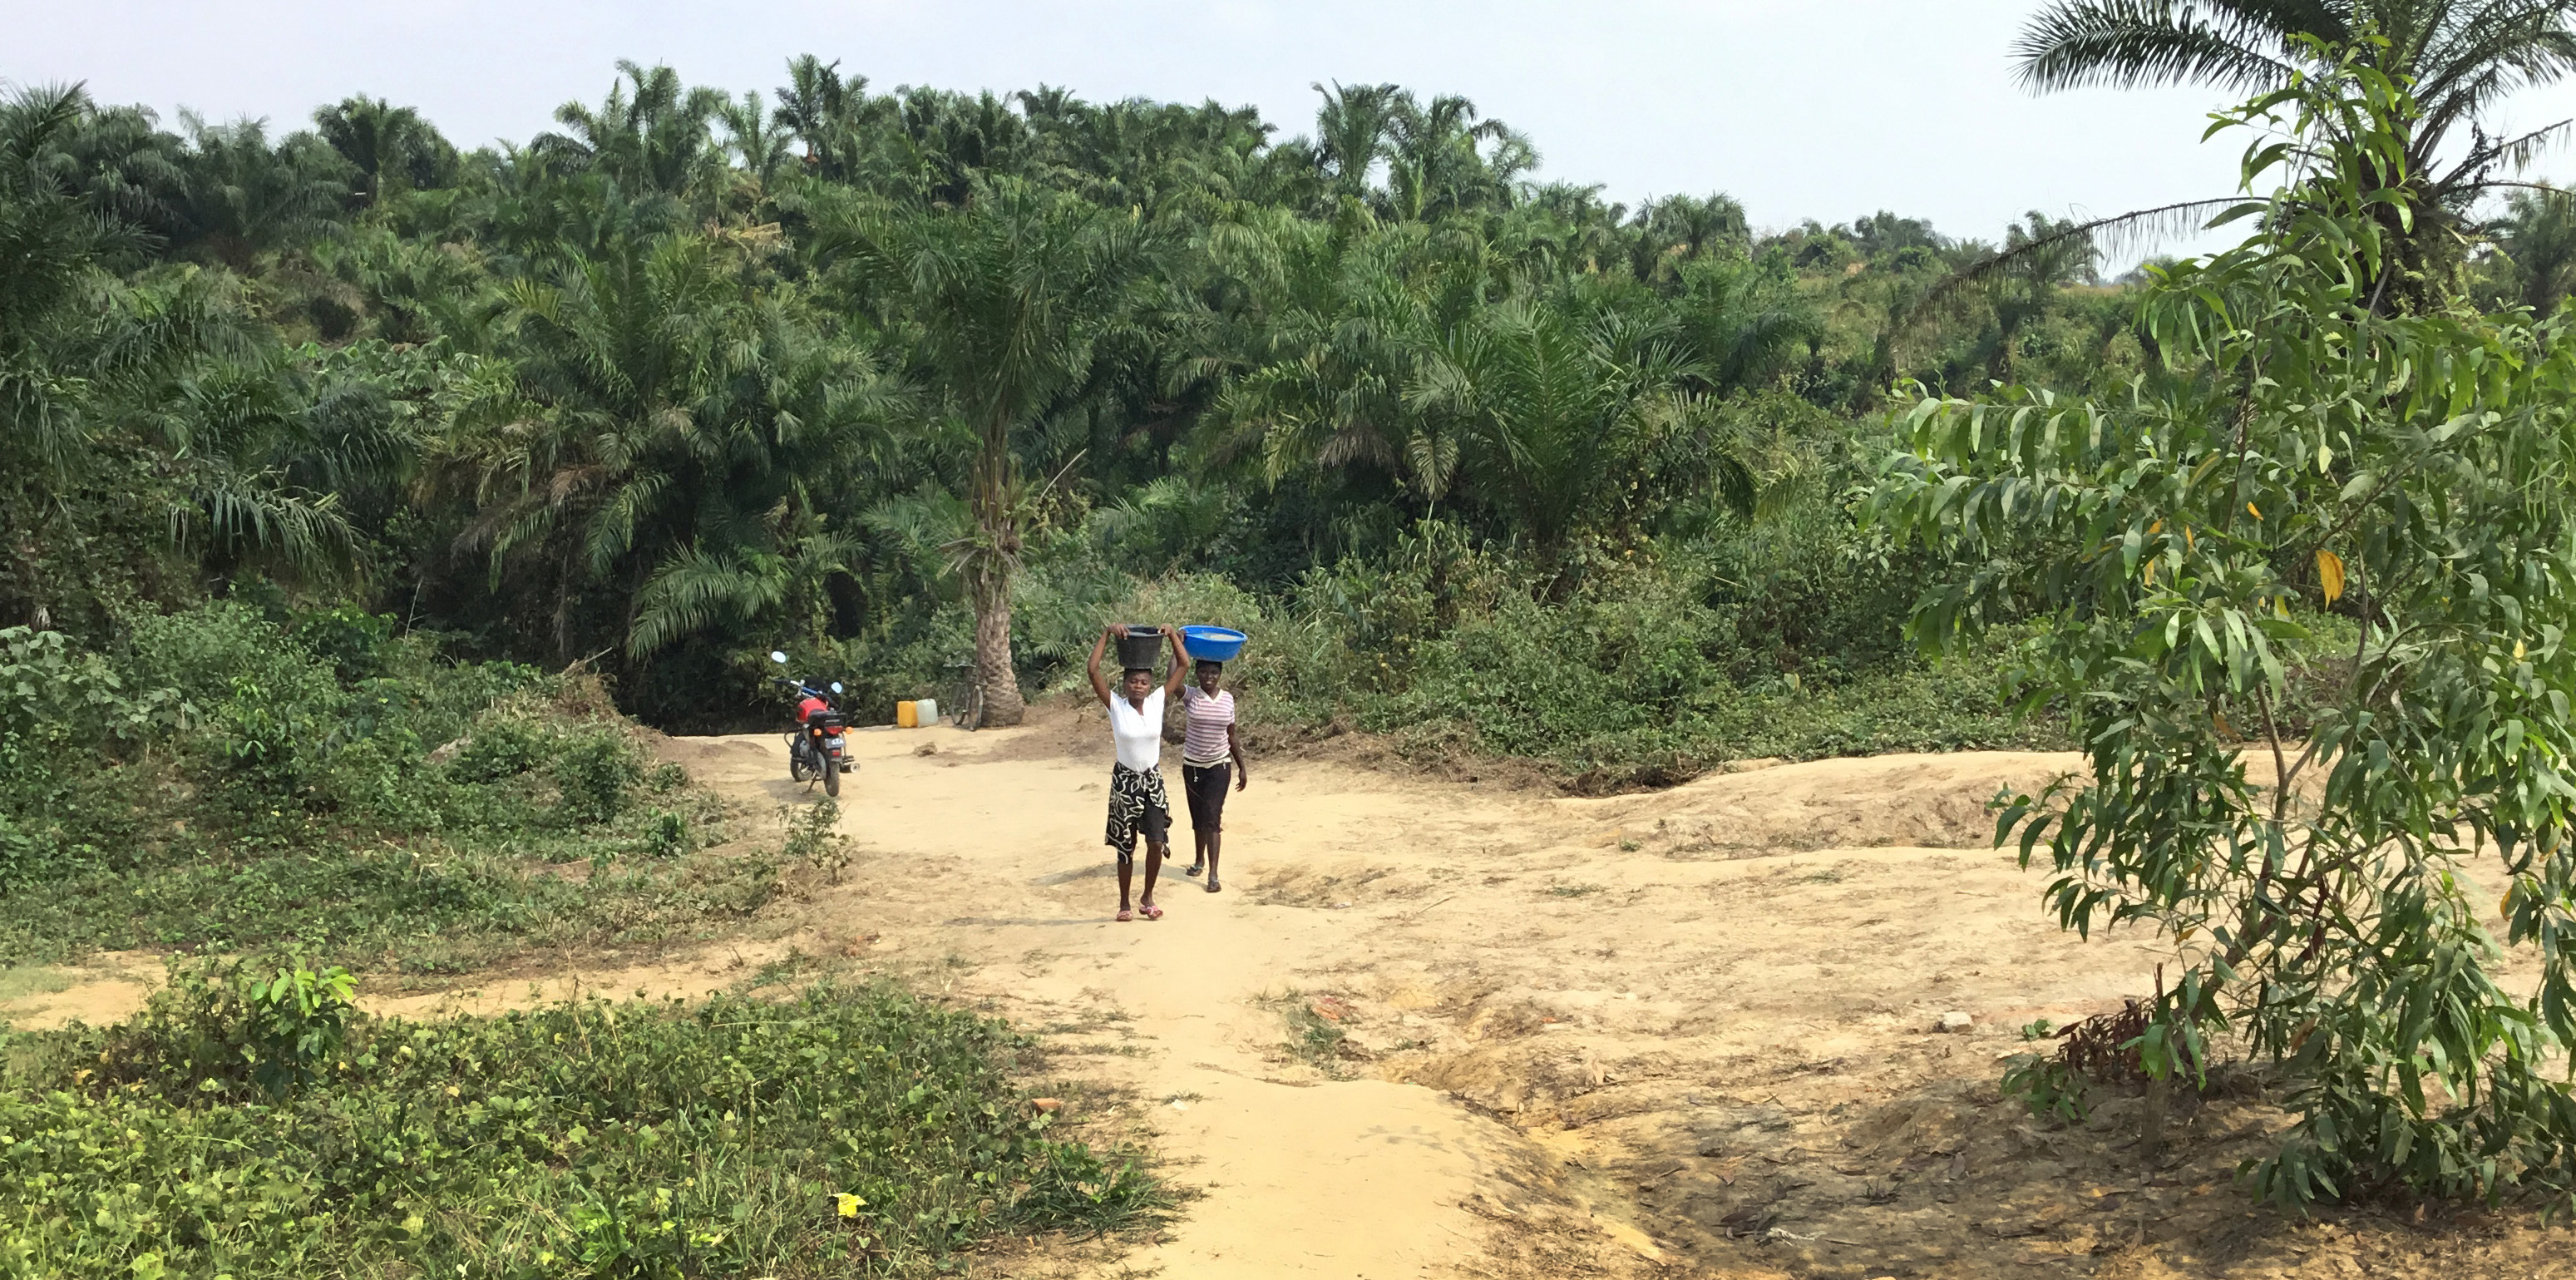 A long dirt road leads to a source for clean water in the East Congo. Photo by Judith Osongo Yanga